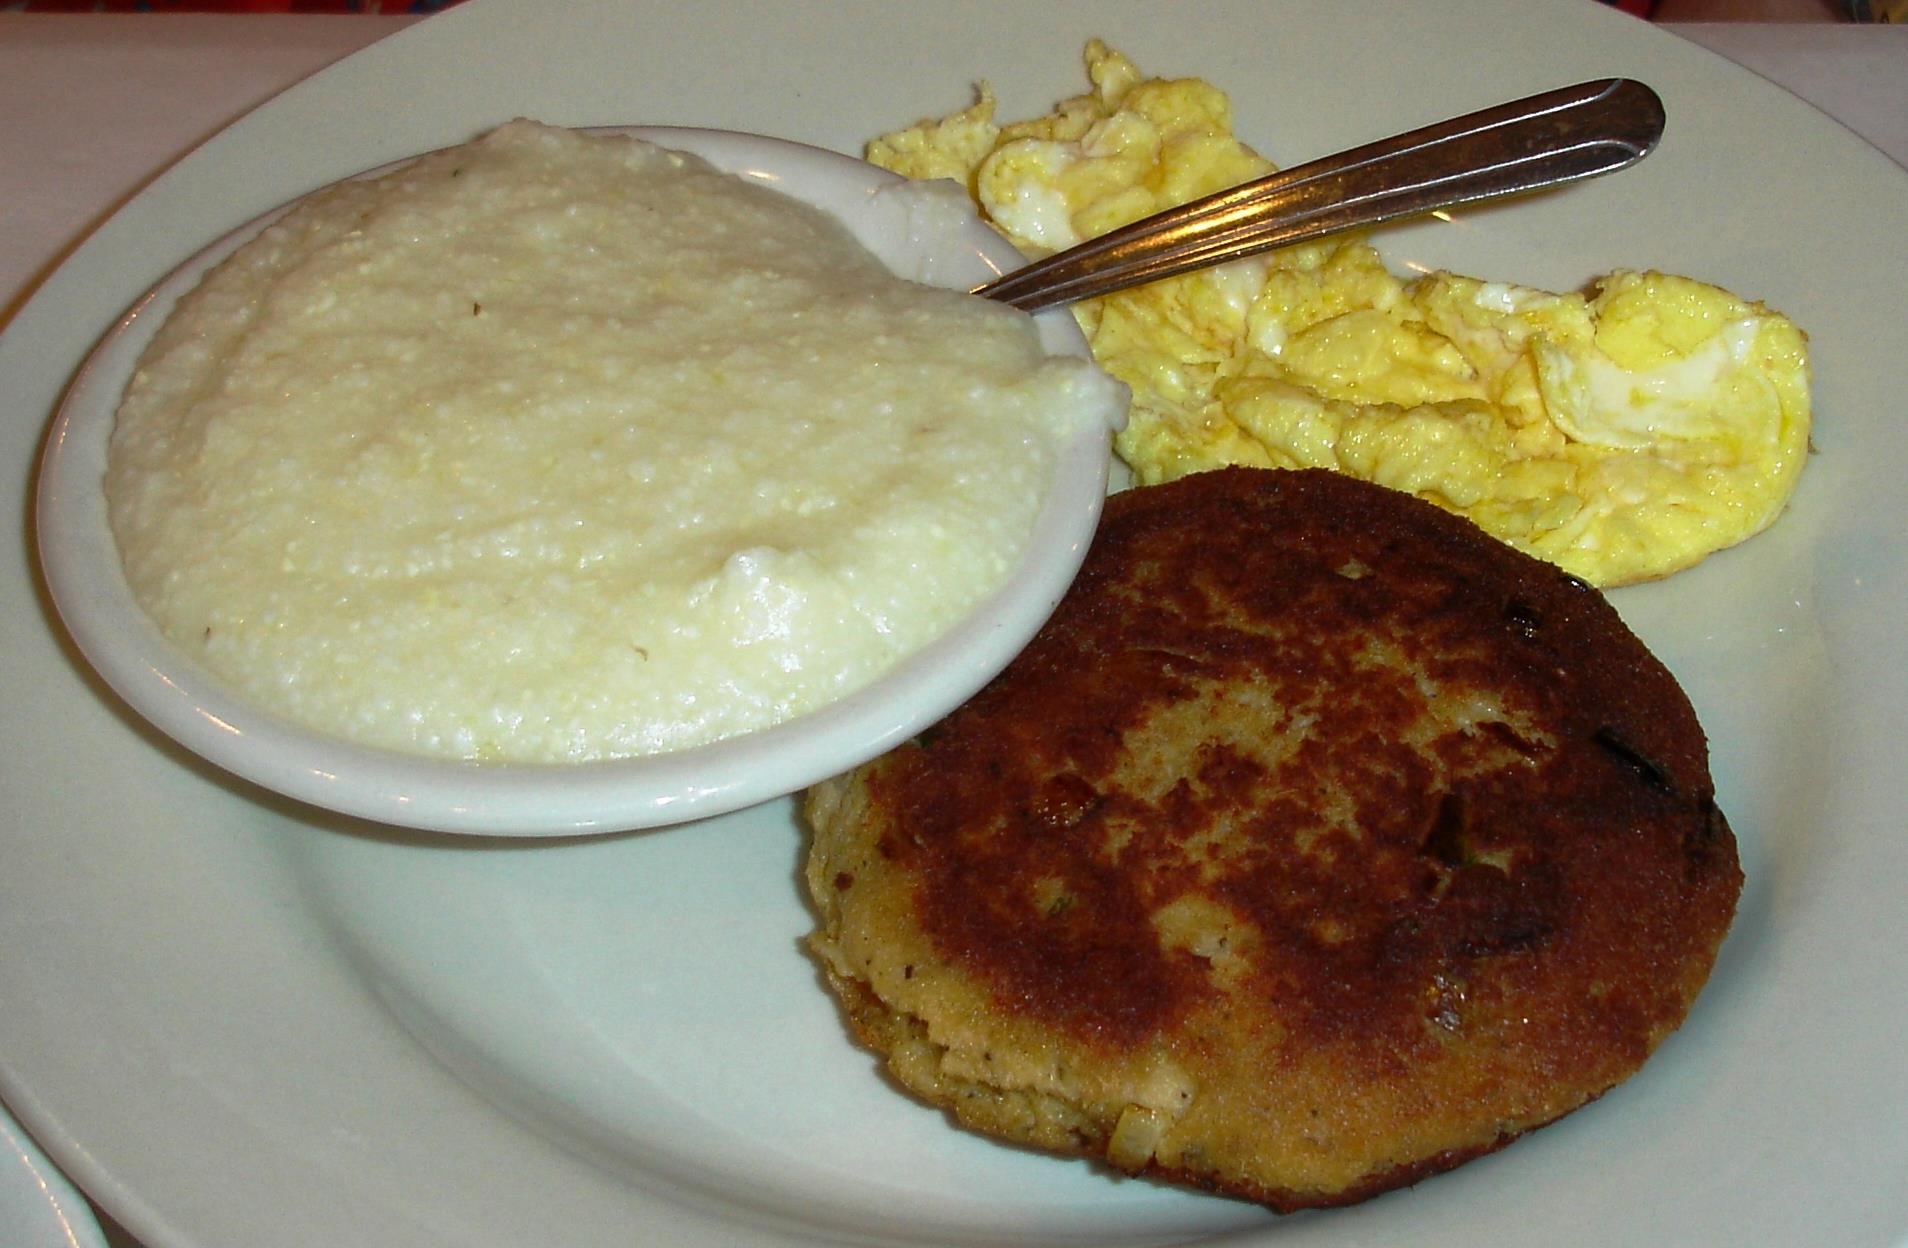 One egg, scrambled, grits, and a salmon croquette